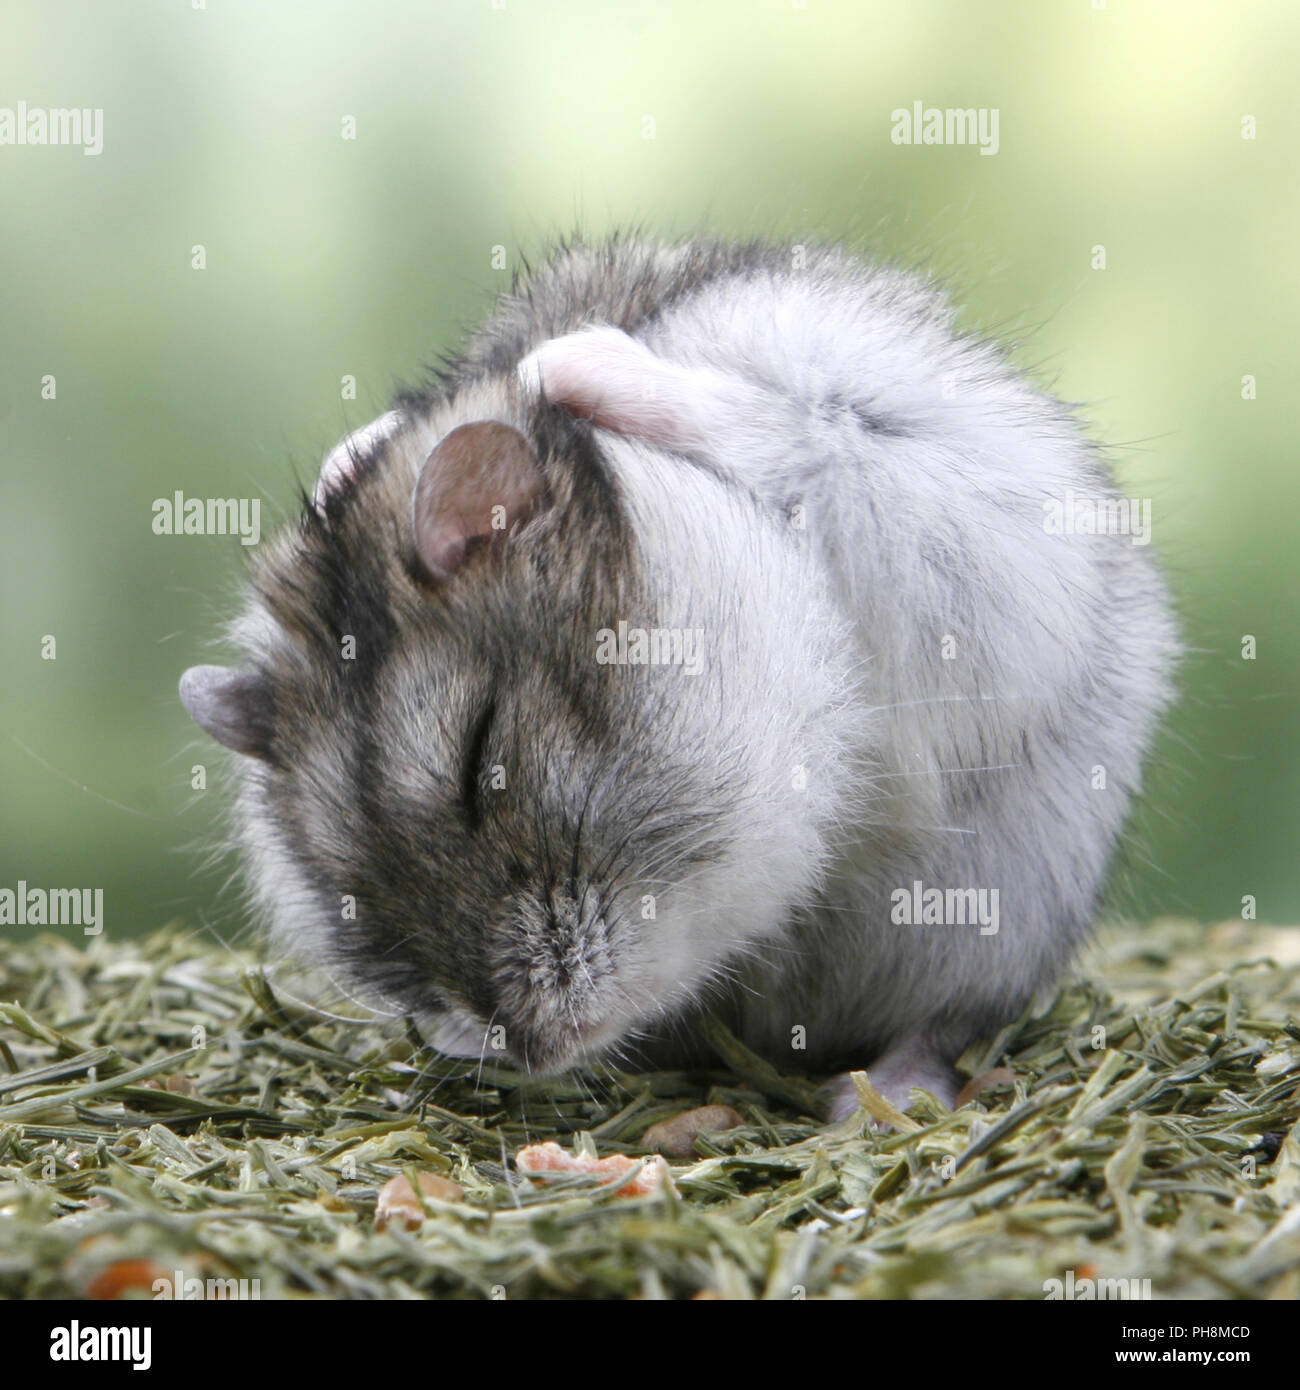 29bcbc01ace Russian Dwarf Hamsters Stock Photos   Russian Dwarf Hamsters Stock ...